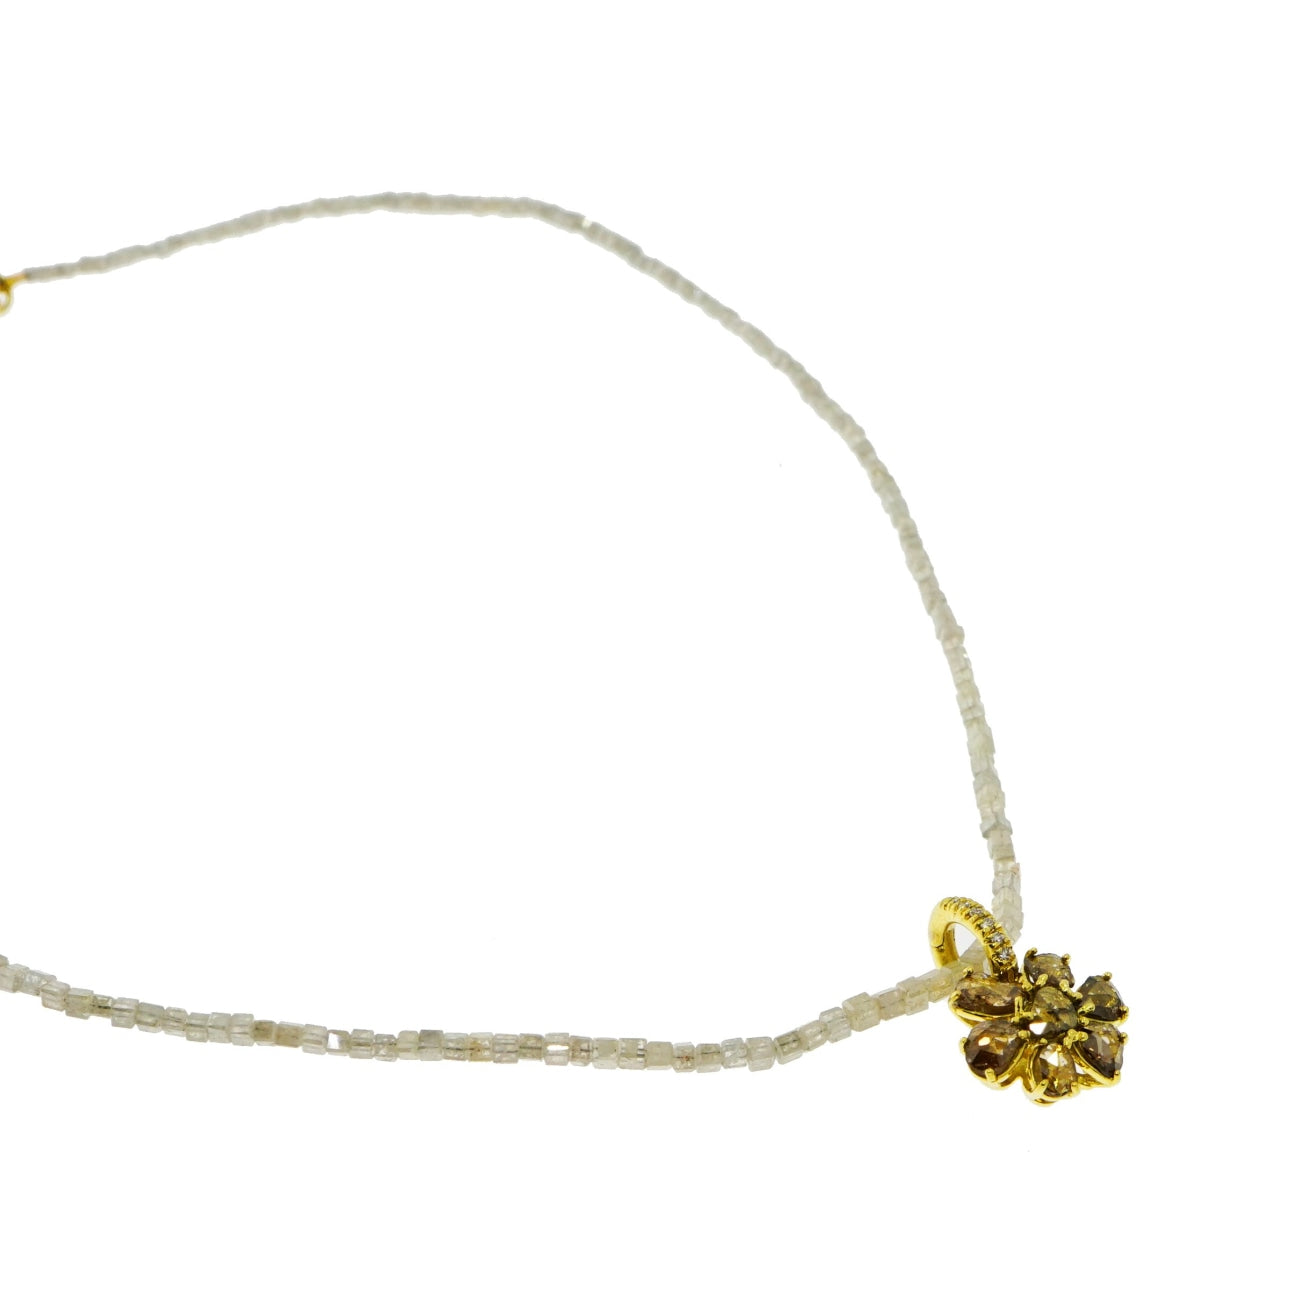 Lauren K Jewelry - Natural faceted Raw Diamond Necklace with Flower | Manfredi Jewels